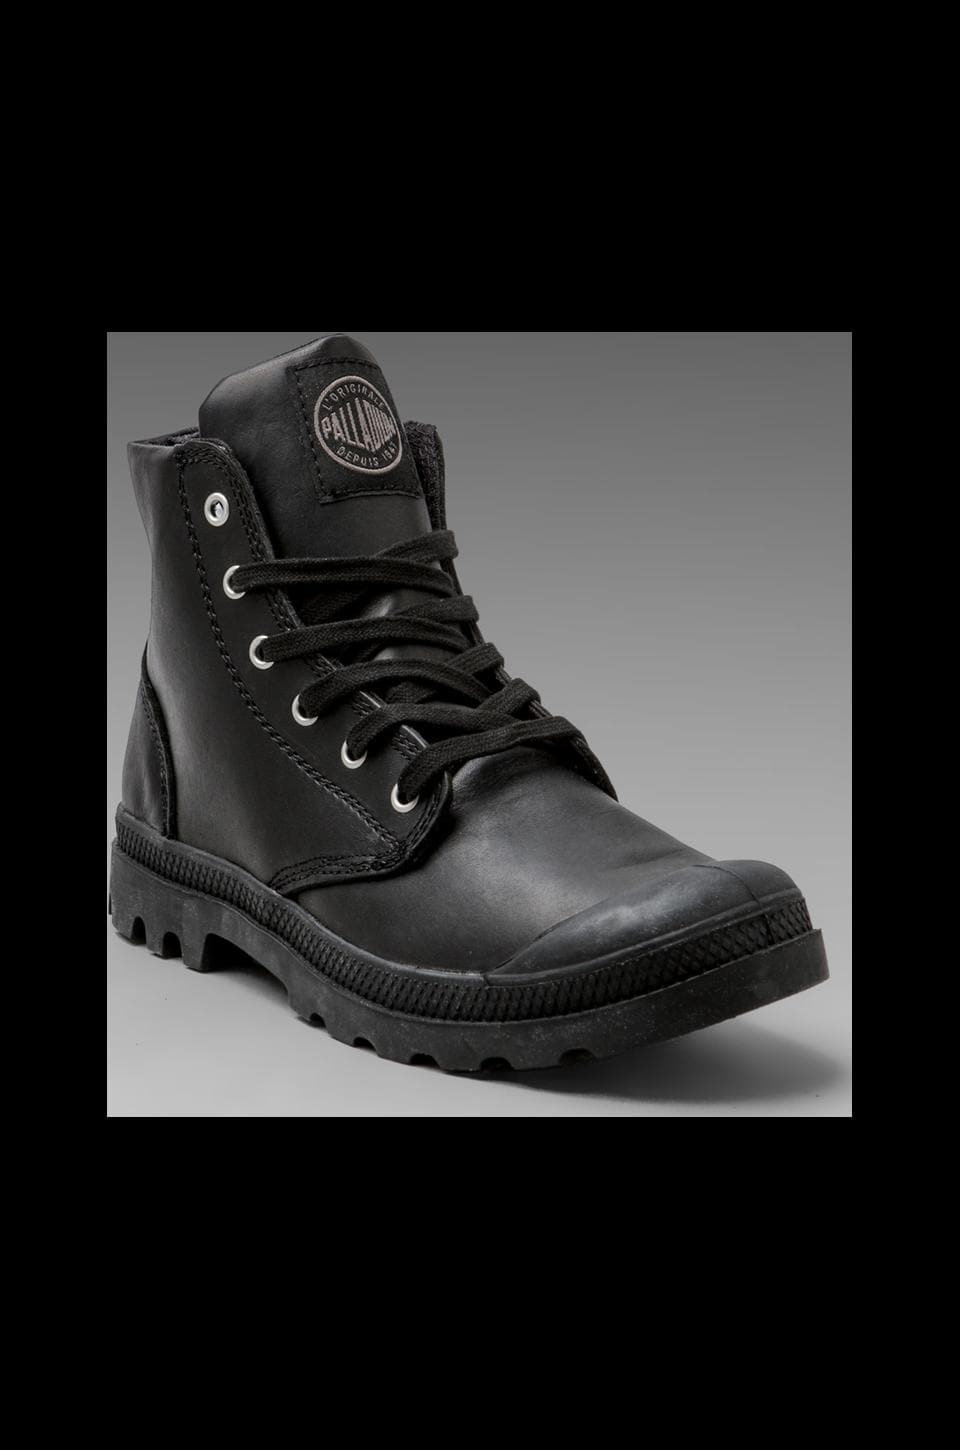 Palladium Pampa Hi Leather in Black